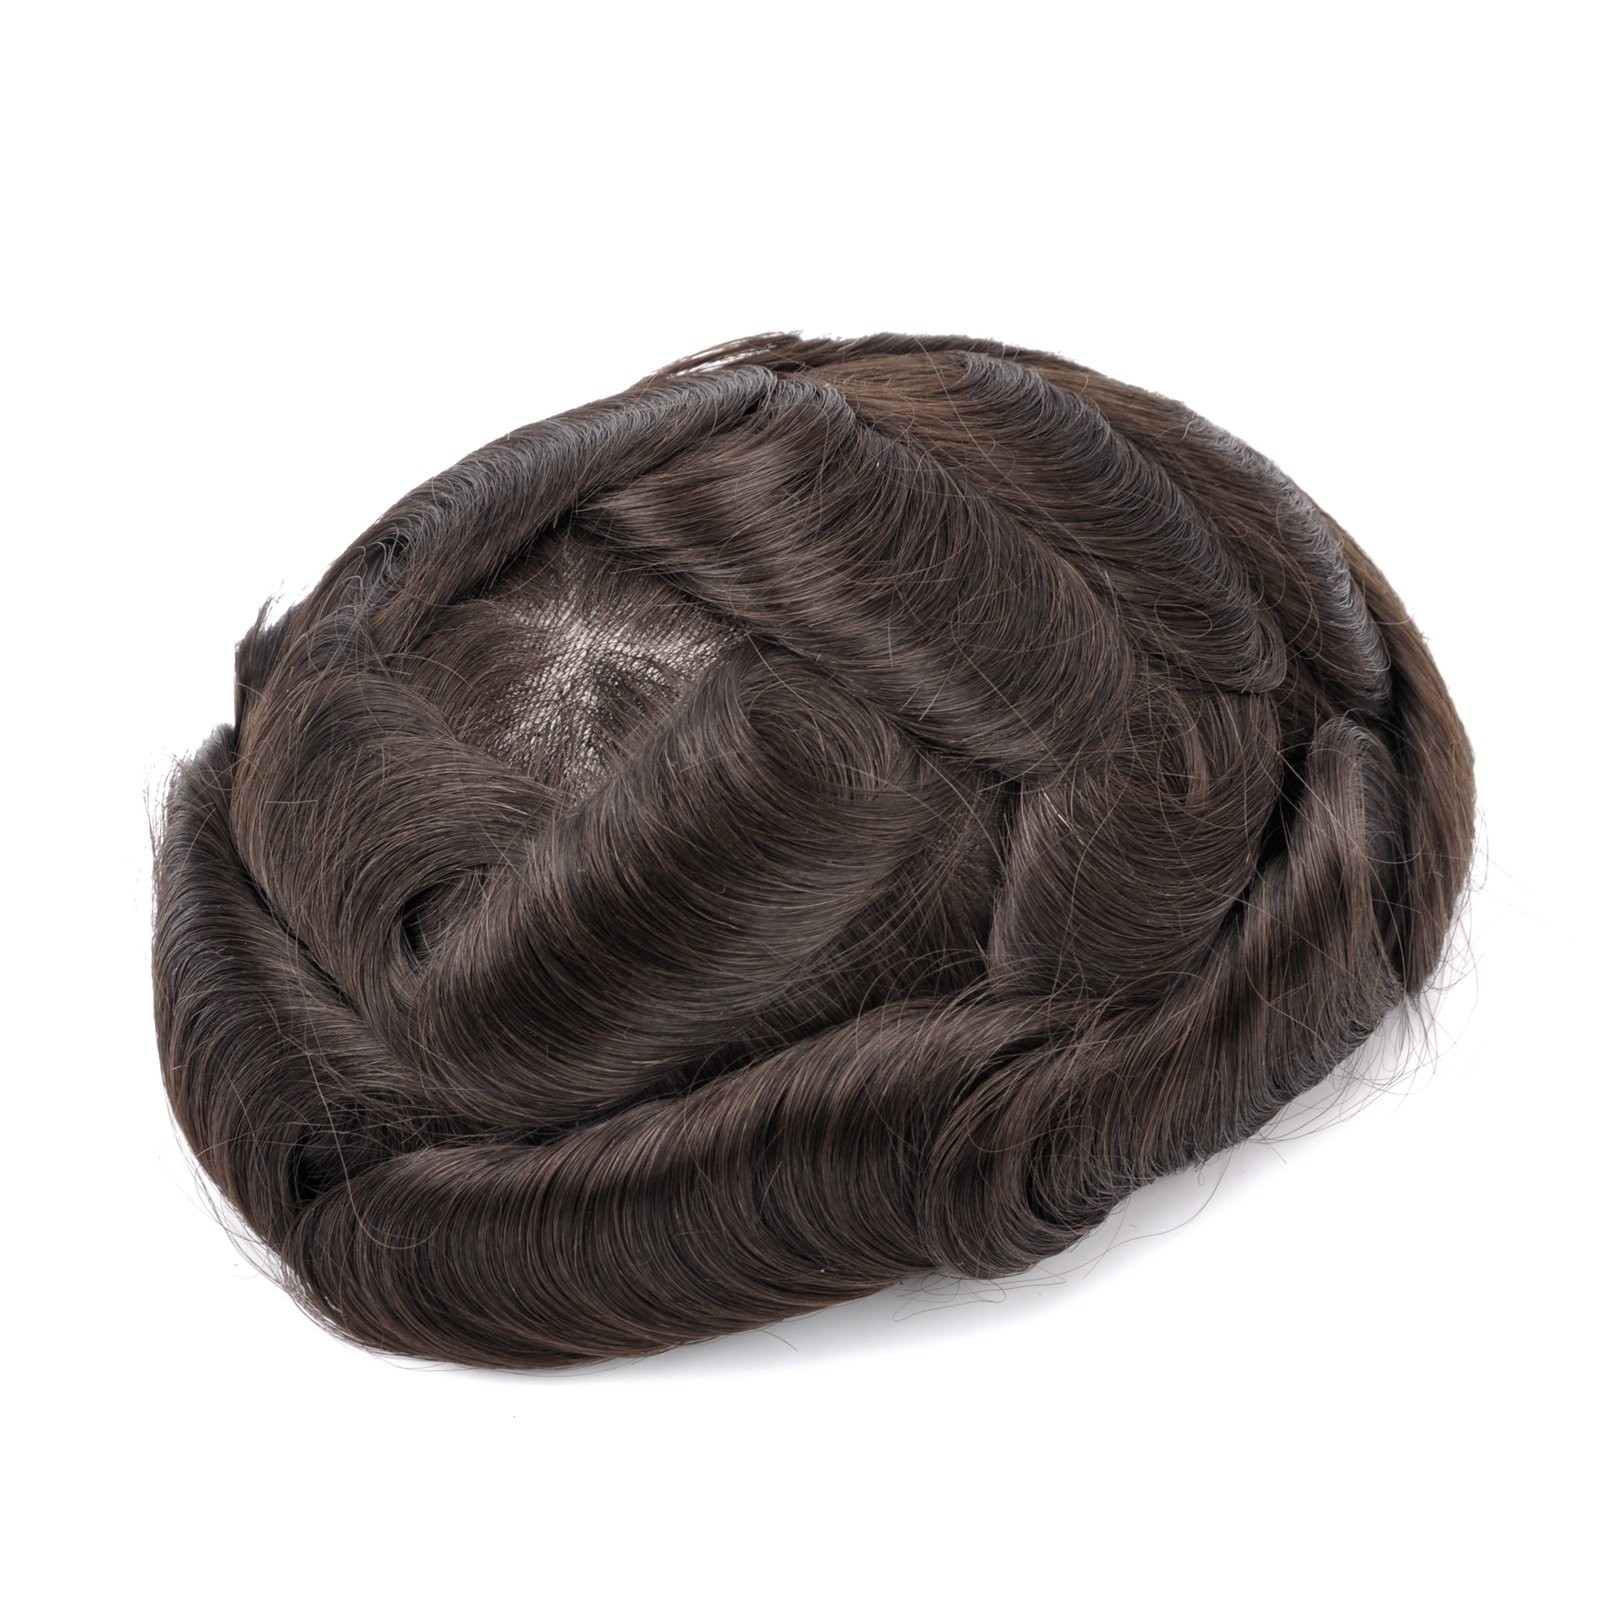 HHQ6 French Lace With Thin Skin Sides Back Men's Hair System Manufacturers, HHQ6 French Lace With Thin Skin Sides Back Men's Hair System Factory, Supply HHQ6 French Lace With Thin Skin Sides Back Men's Hair System